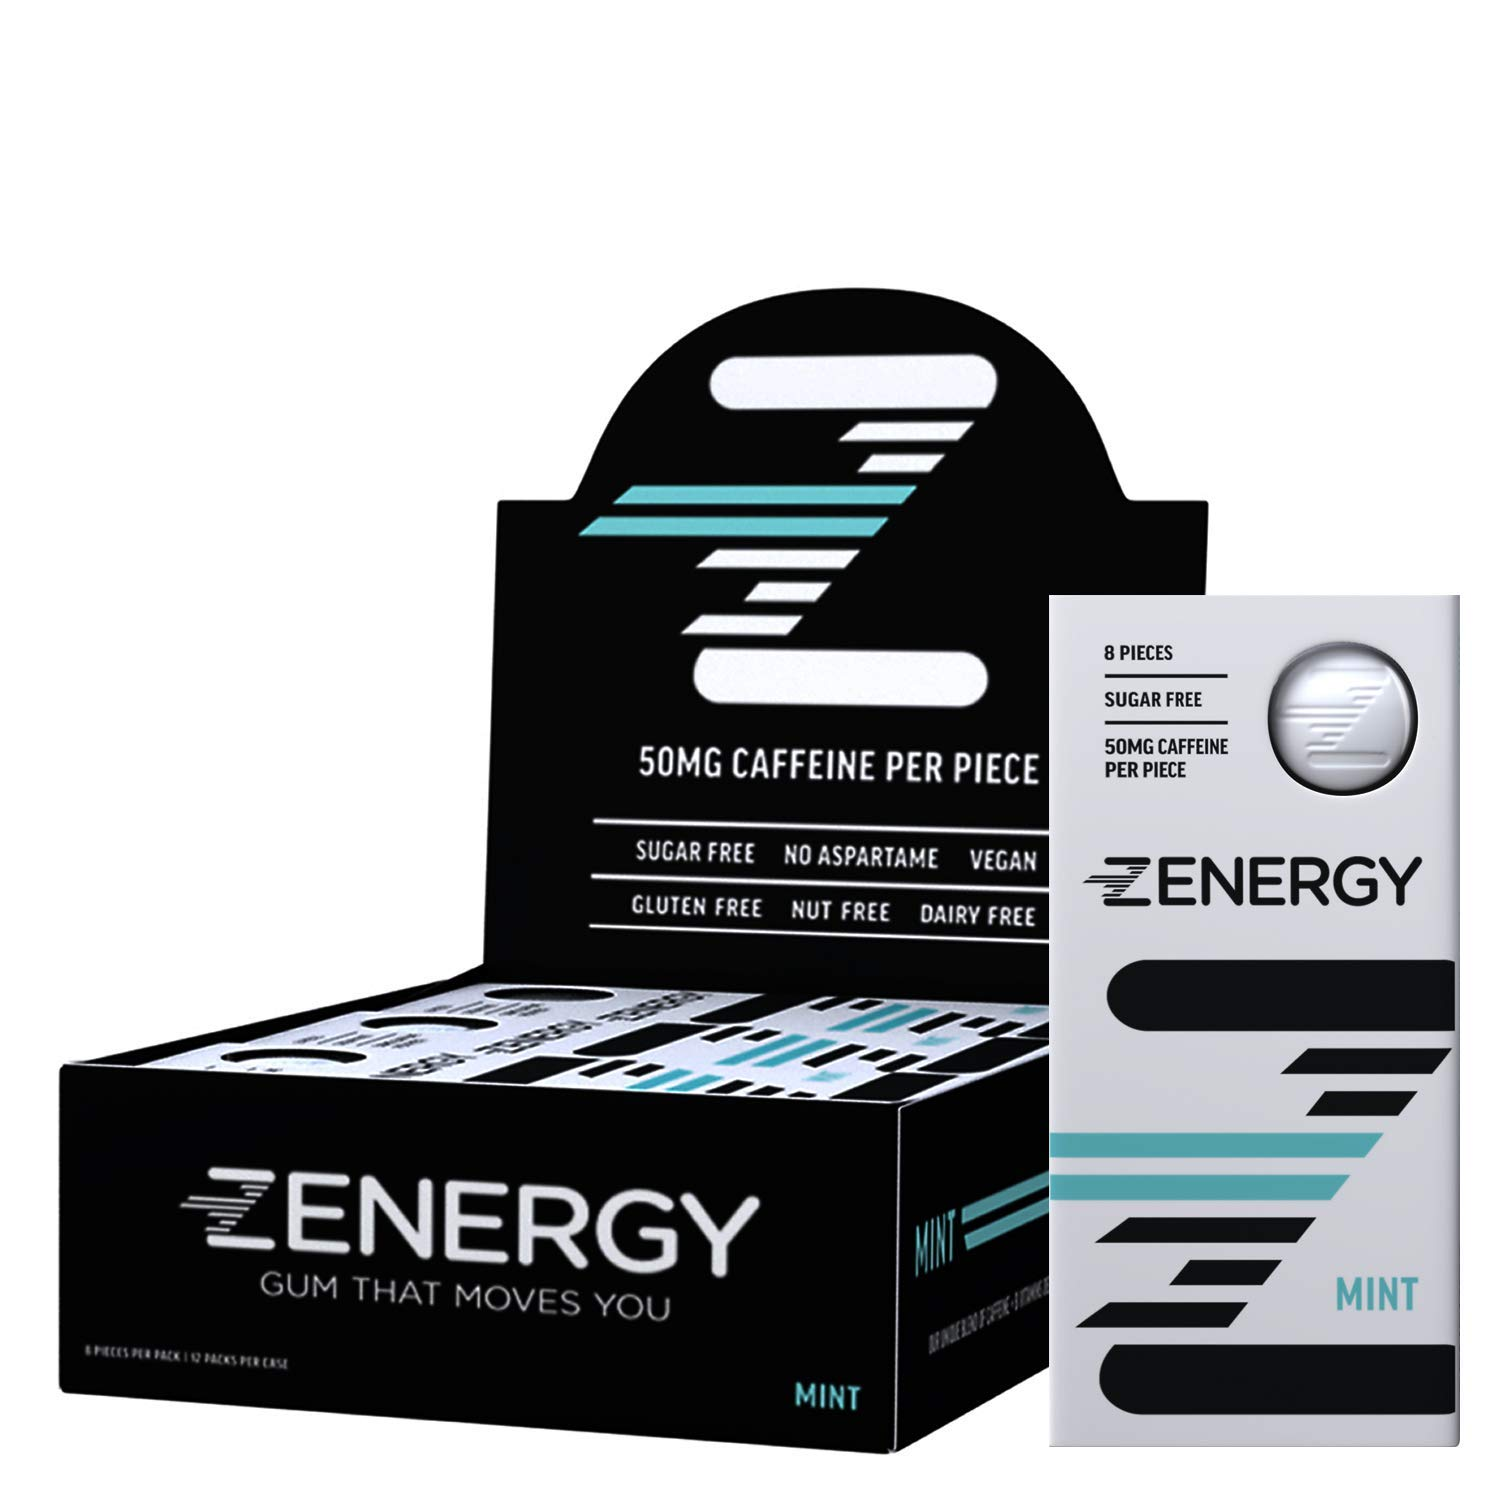 Zenergy 50mg Mint Flavor Caffeine Gum with Vitamins B6 + B12 - Natural Vegan Energy Booster, Sugar Free, Gluten Free, Aspartame Free Gum, 0 Calories (12 Pack) by The Do More Company